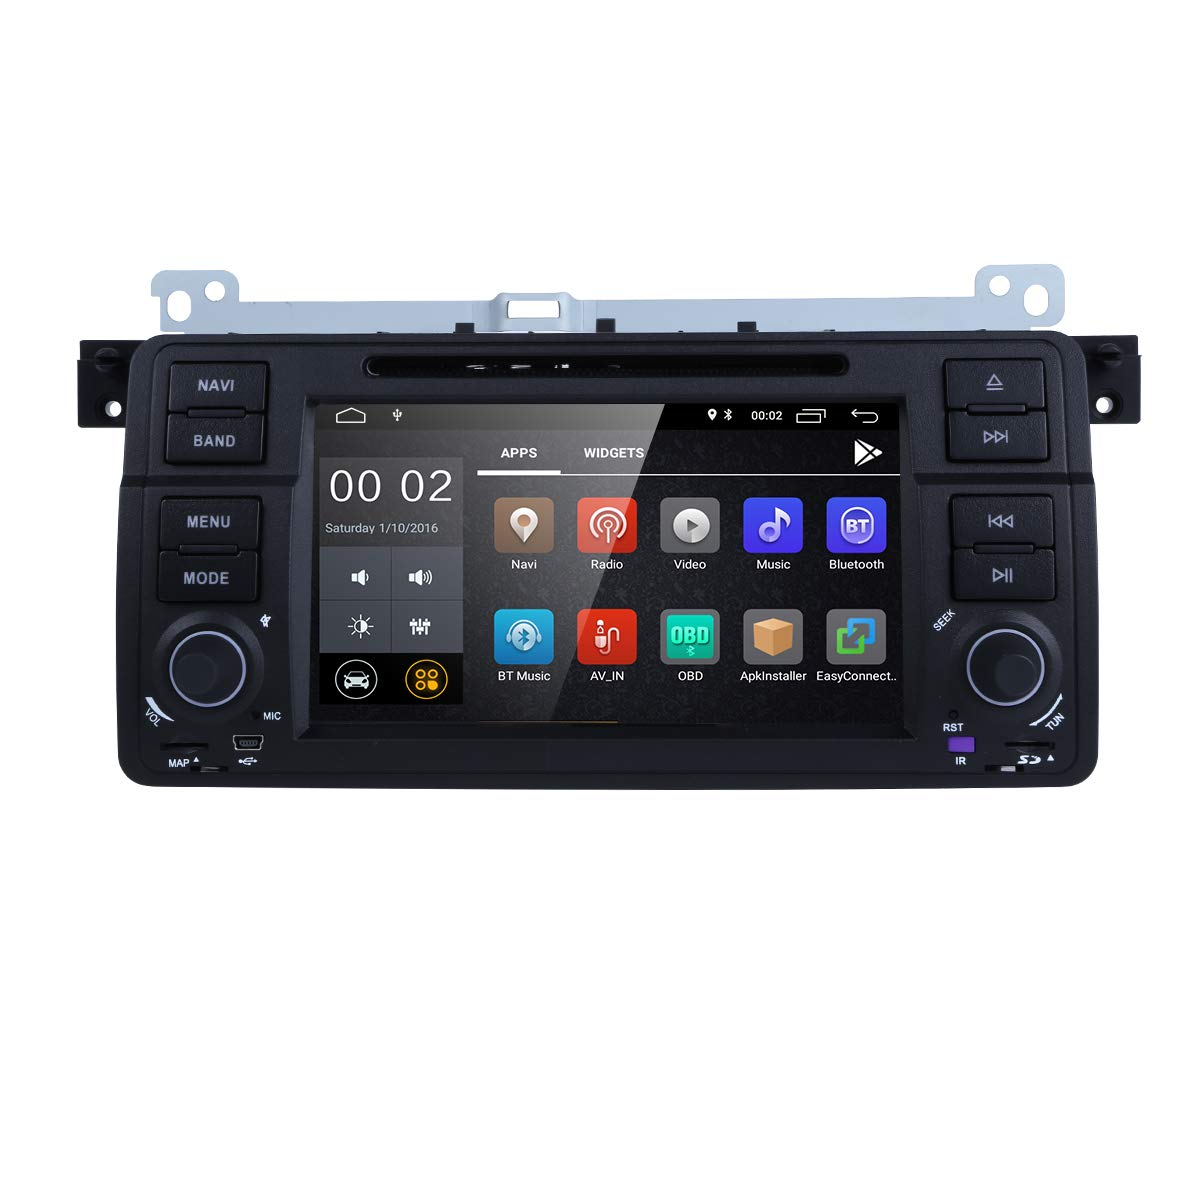 733ecad8436c Amazon.com  Android 8.1 OS Quad Core 1024600 HD Touchscreen Car Radio DVD  Player with GPS Navigation fit for BMW 3 Series E46 M3 318 320 325 330 335   Car ...